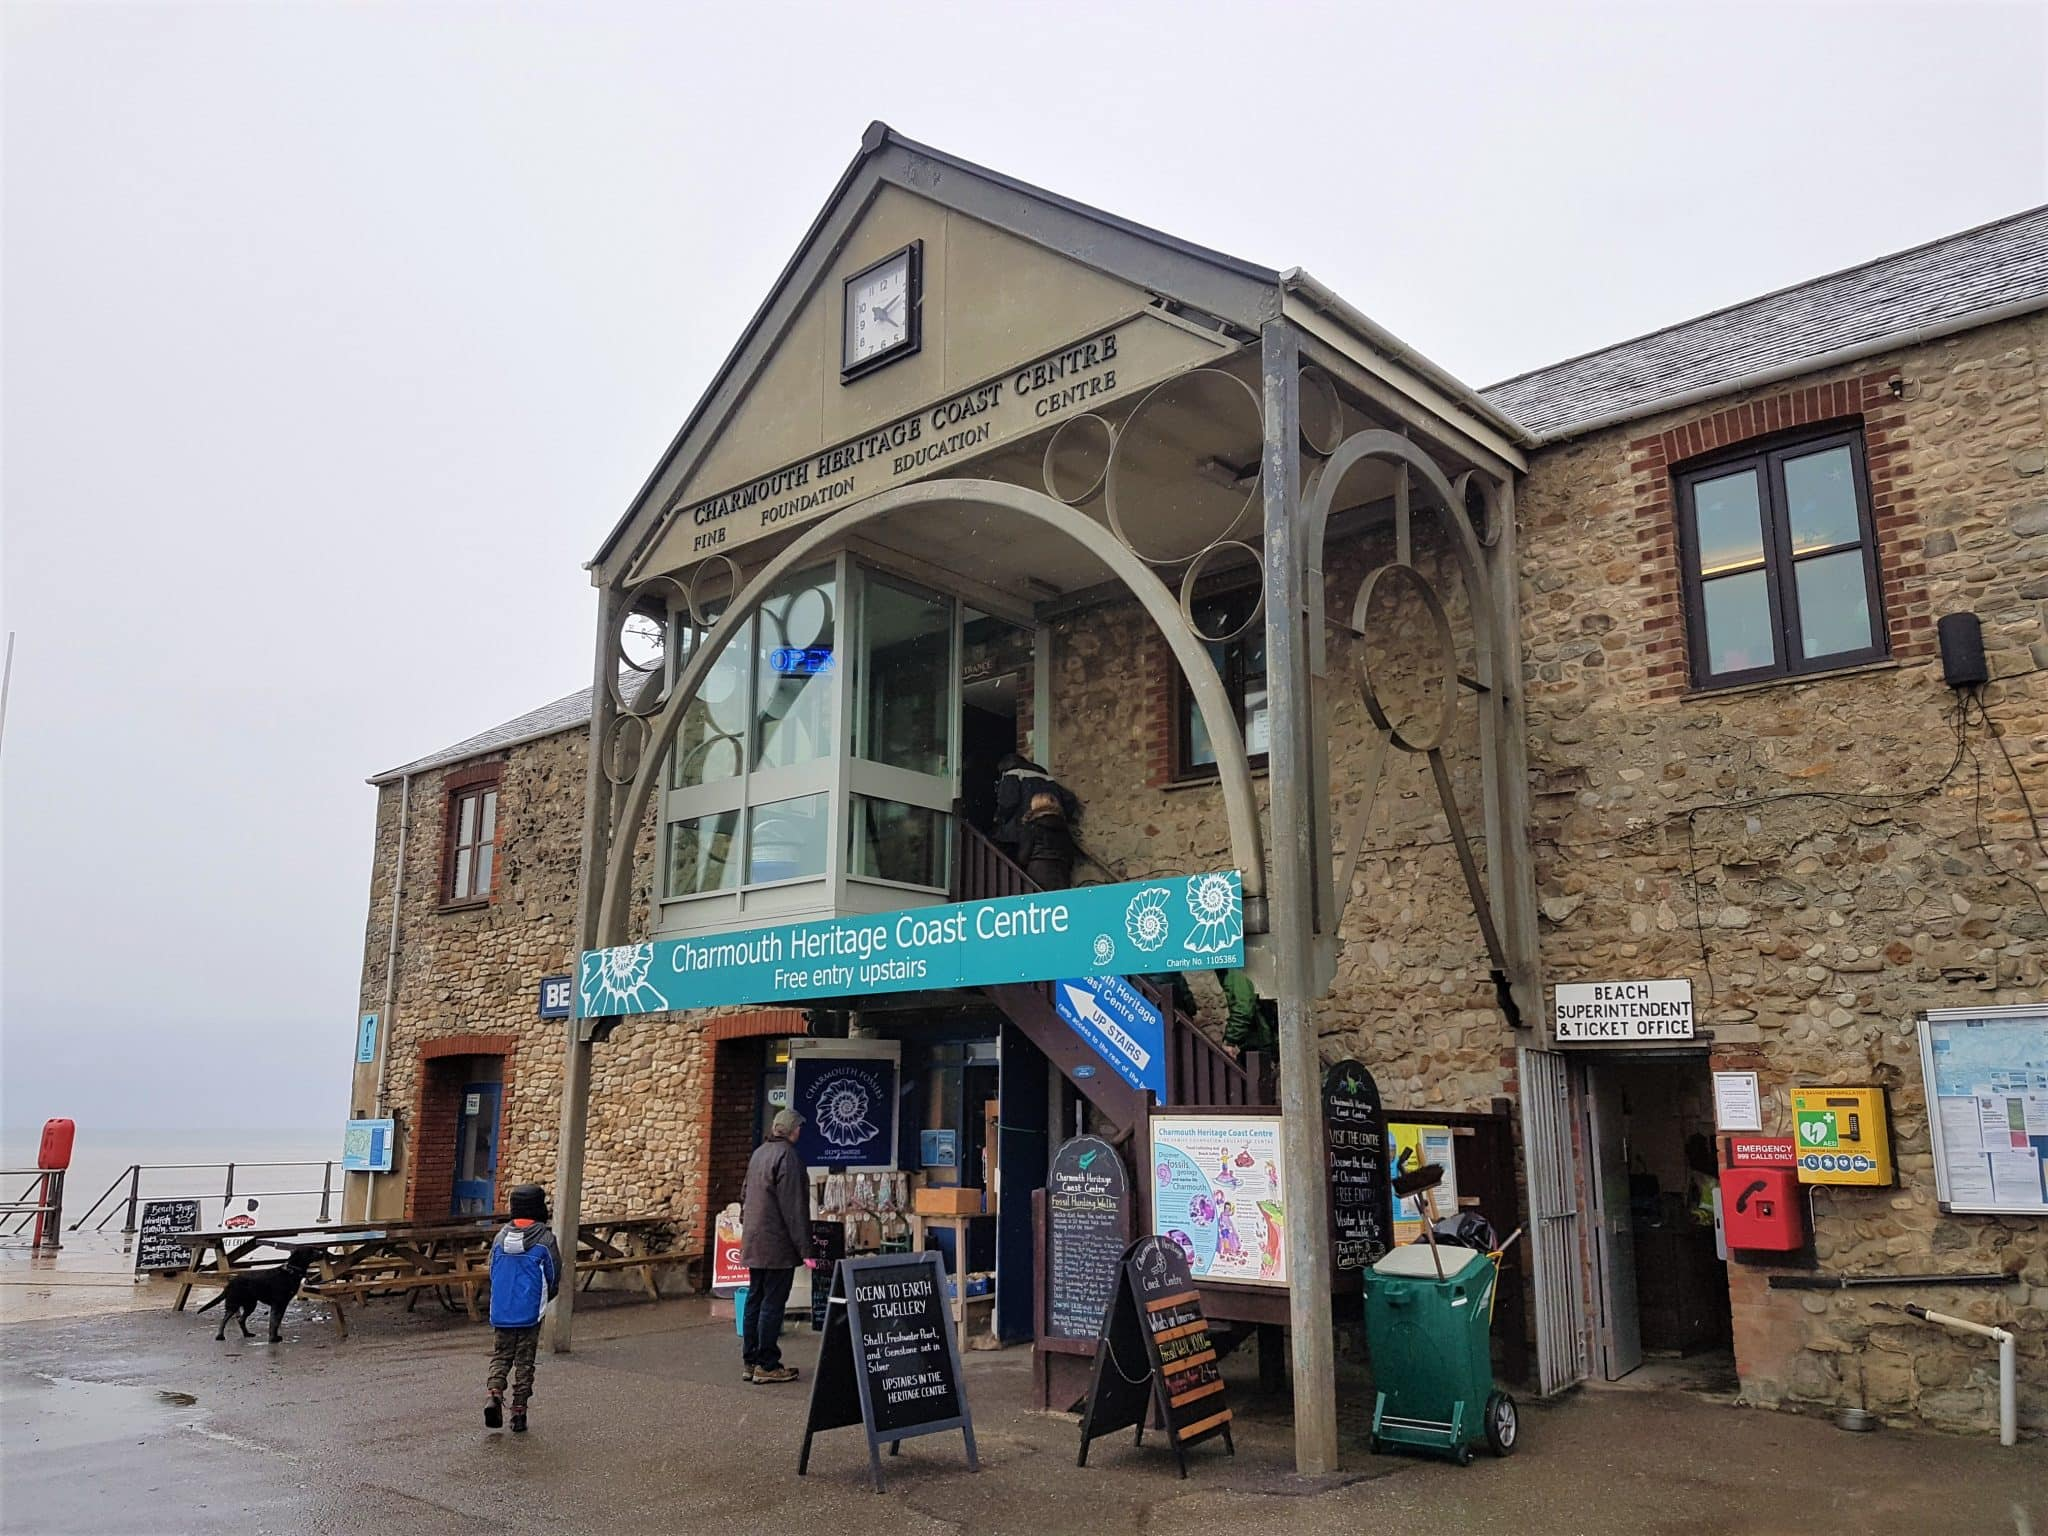 5 - Charmouth Heritage Coast Visitor Centre